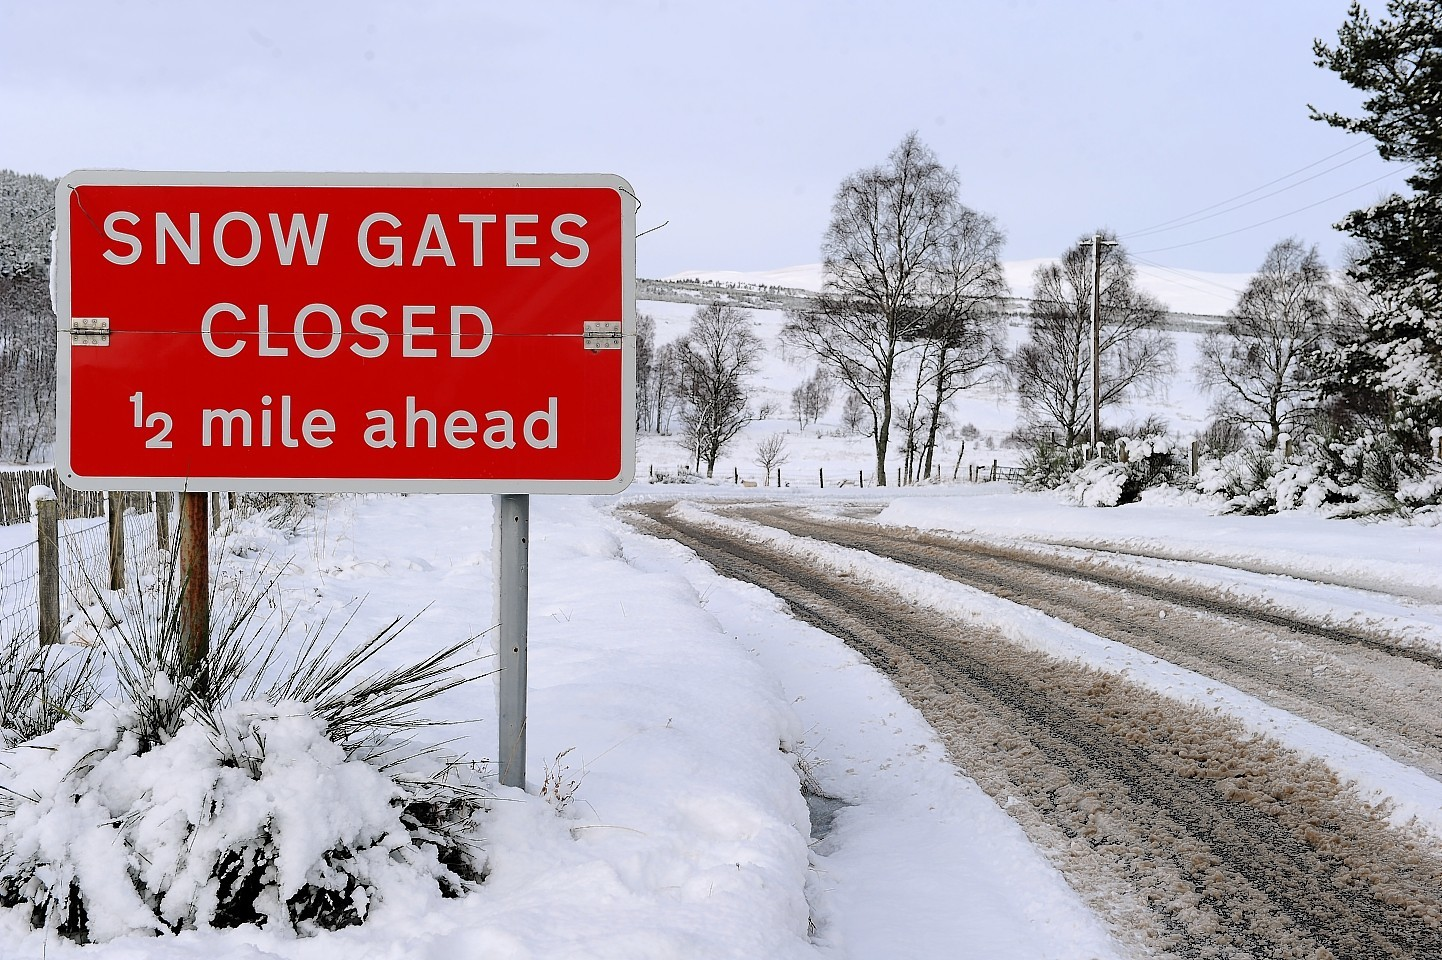 Roads closed as snow falls